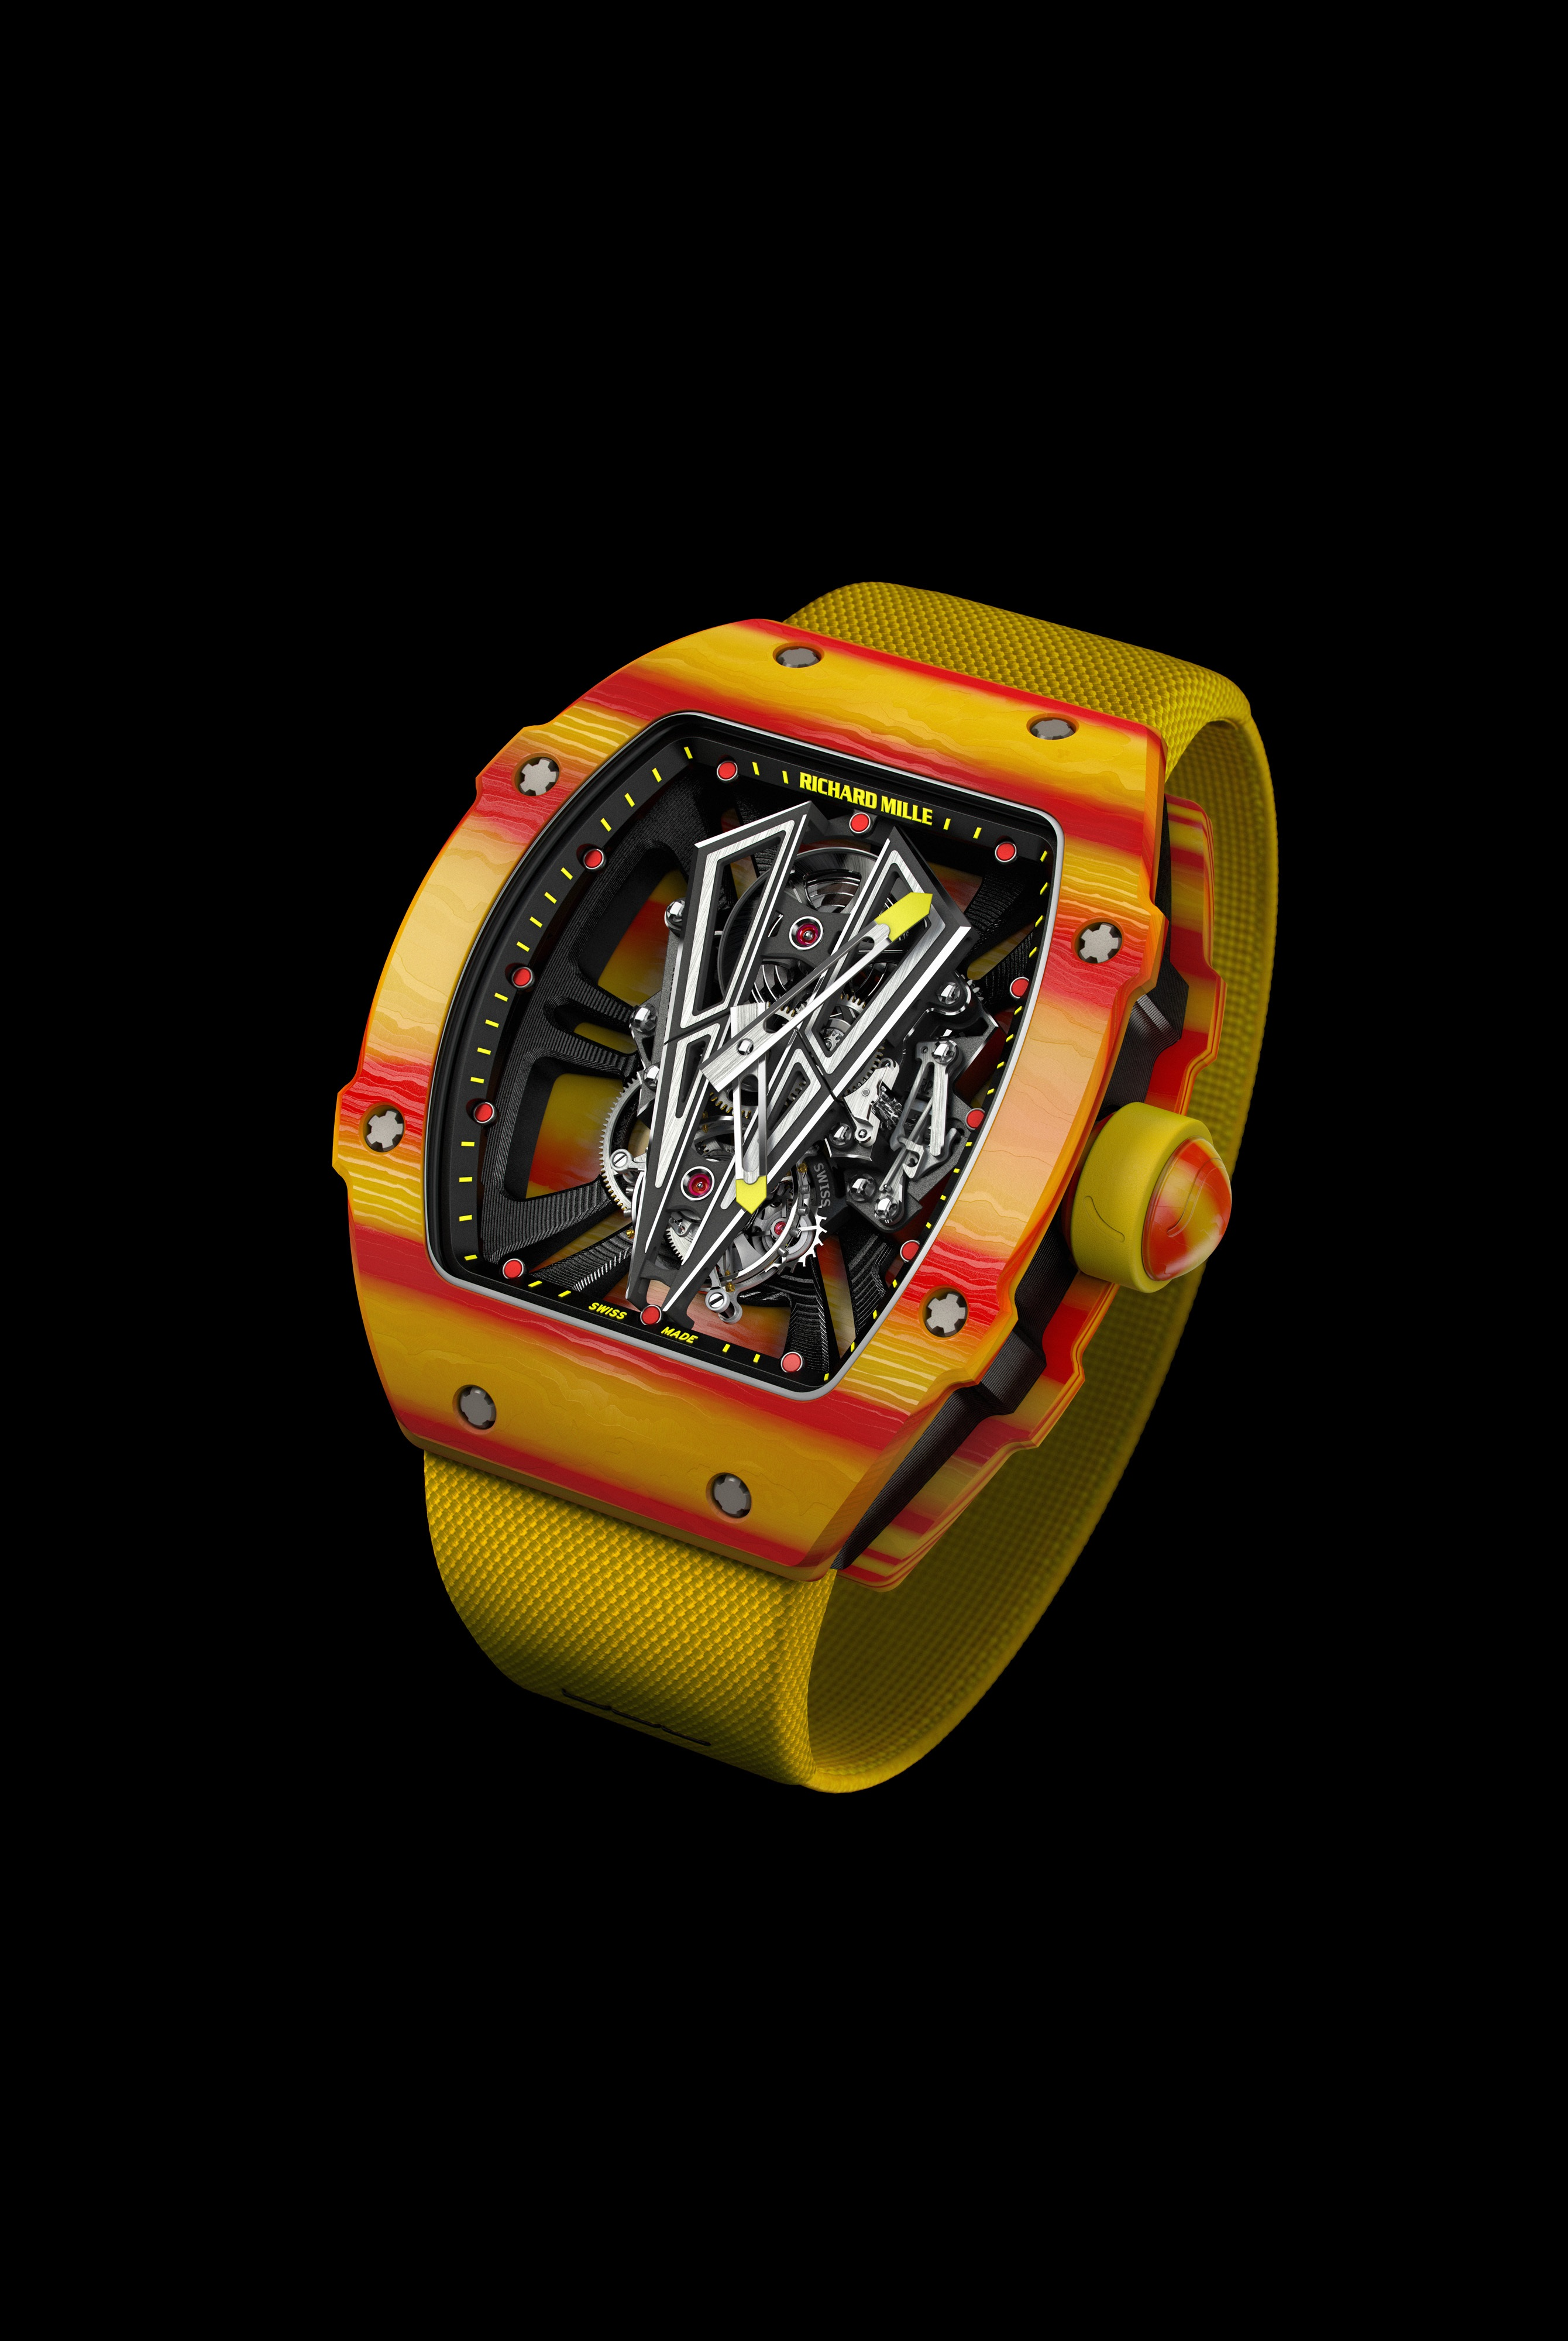 The sixth Richard Mille and Rafael Nadal collaboration